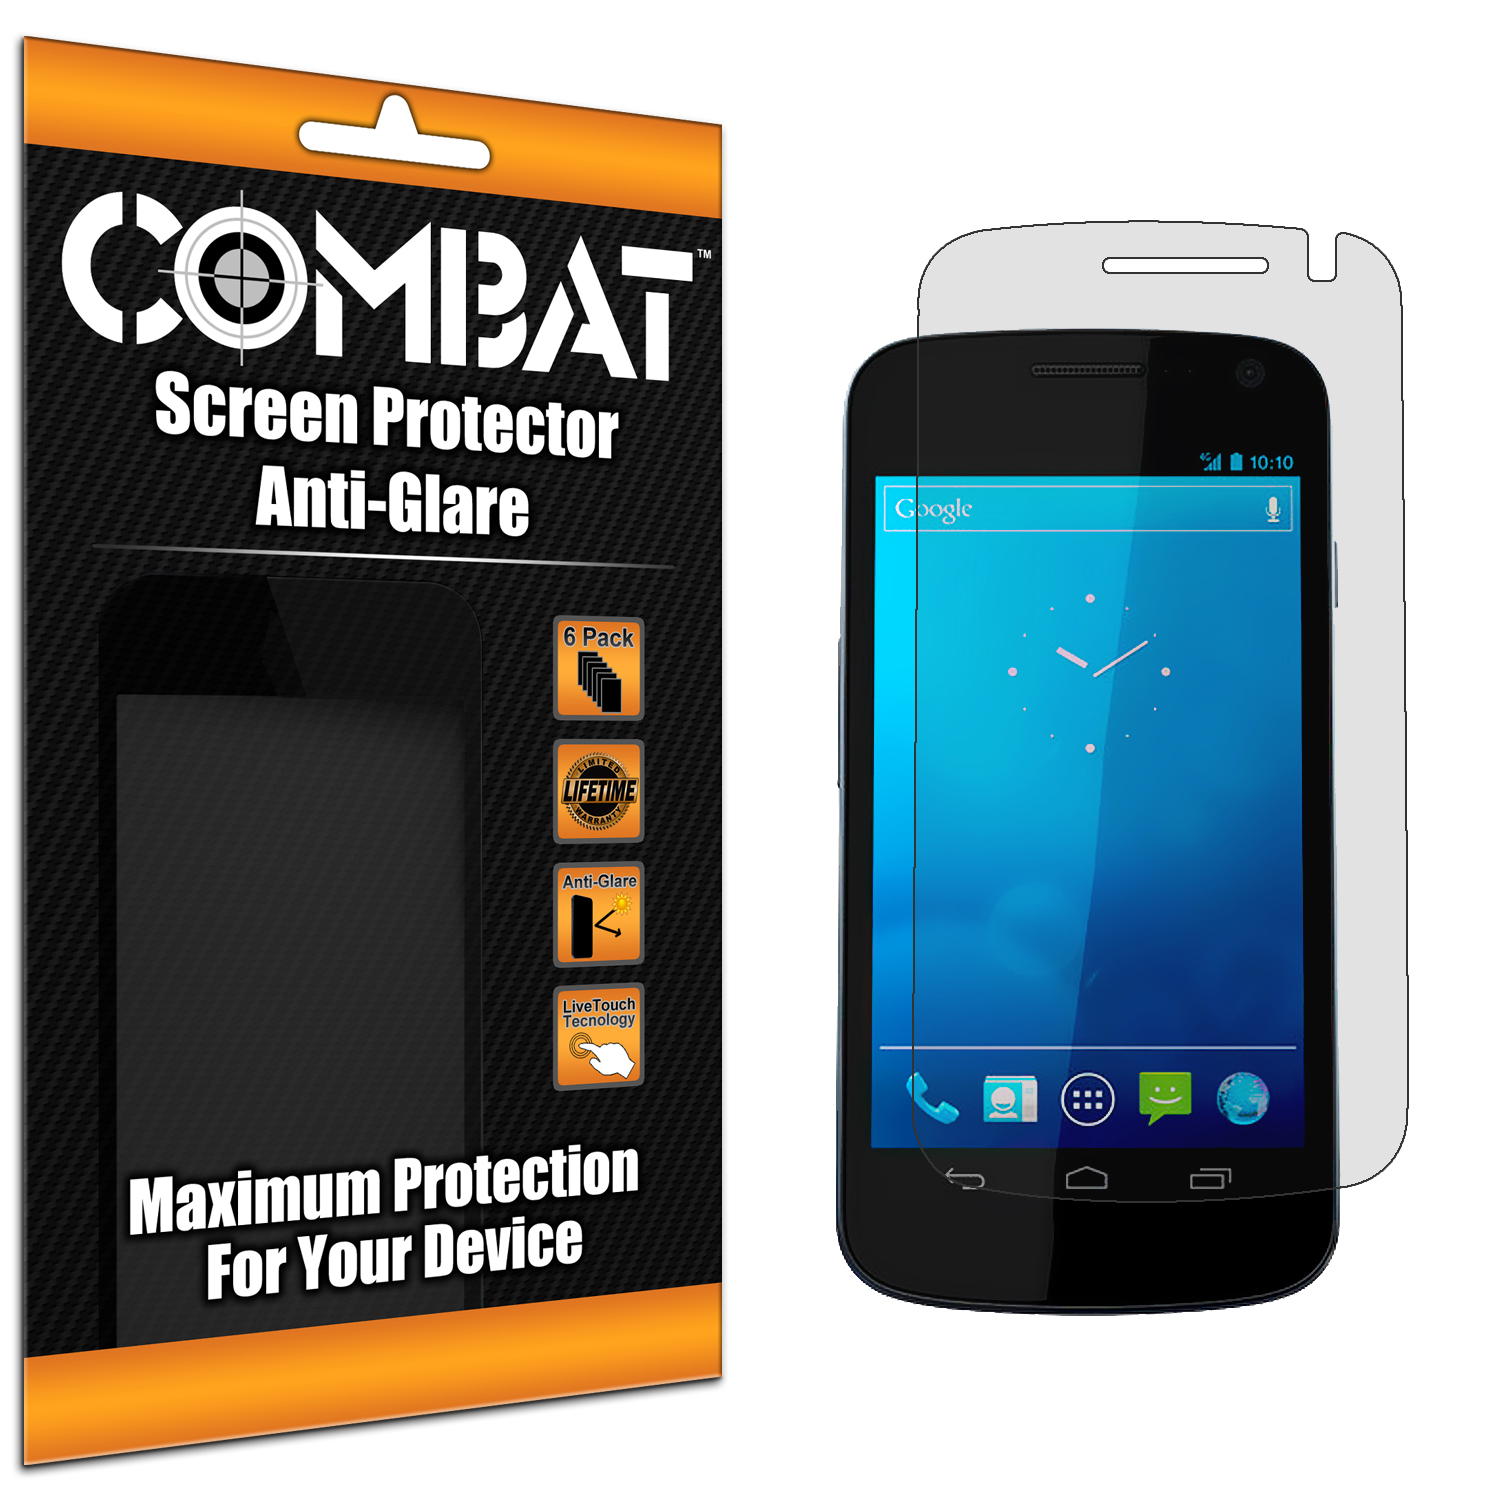 Samsung Droid Prime i515 Combat 6 Pack Anti-Glare Matte Screen Protector